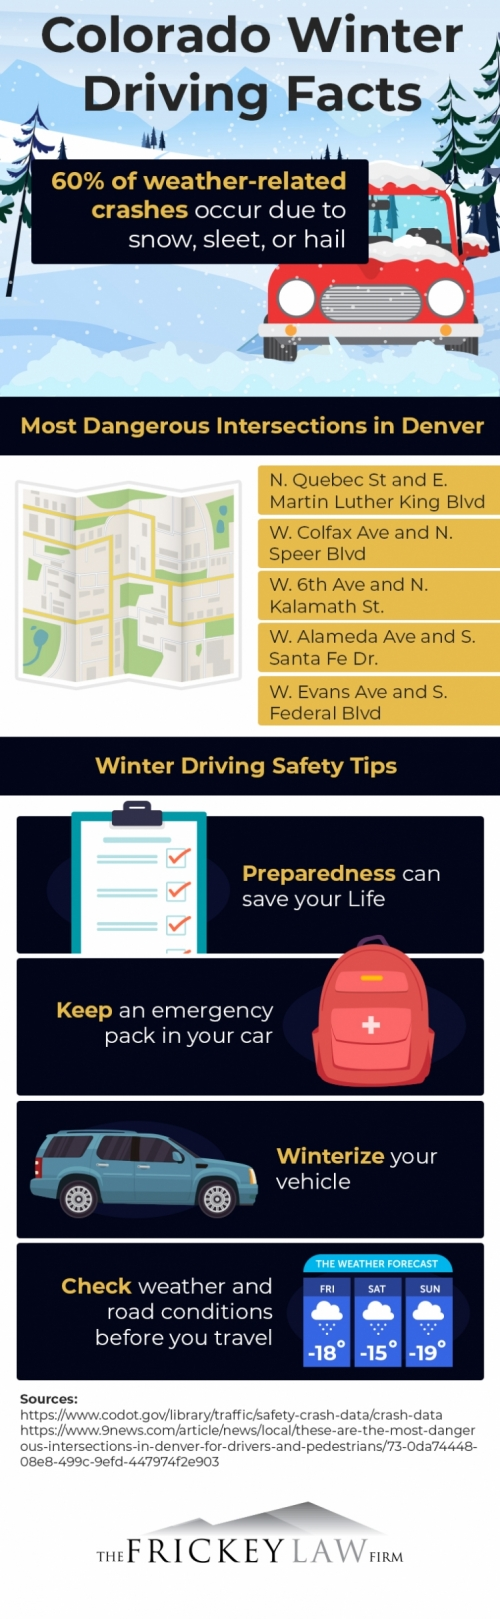 Colorado winter driving facts infographic